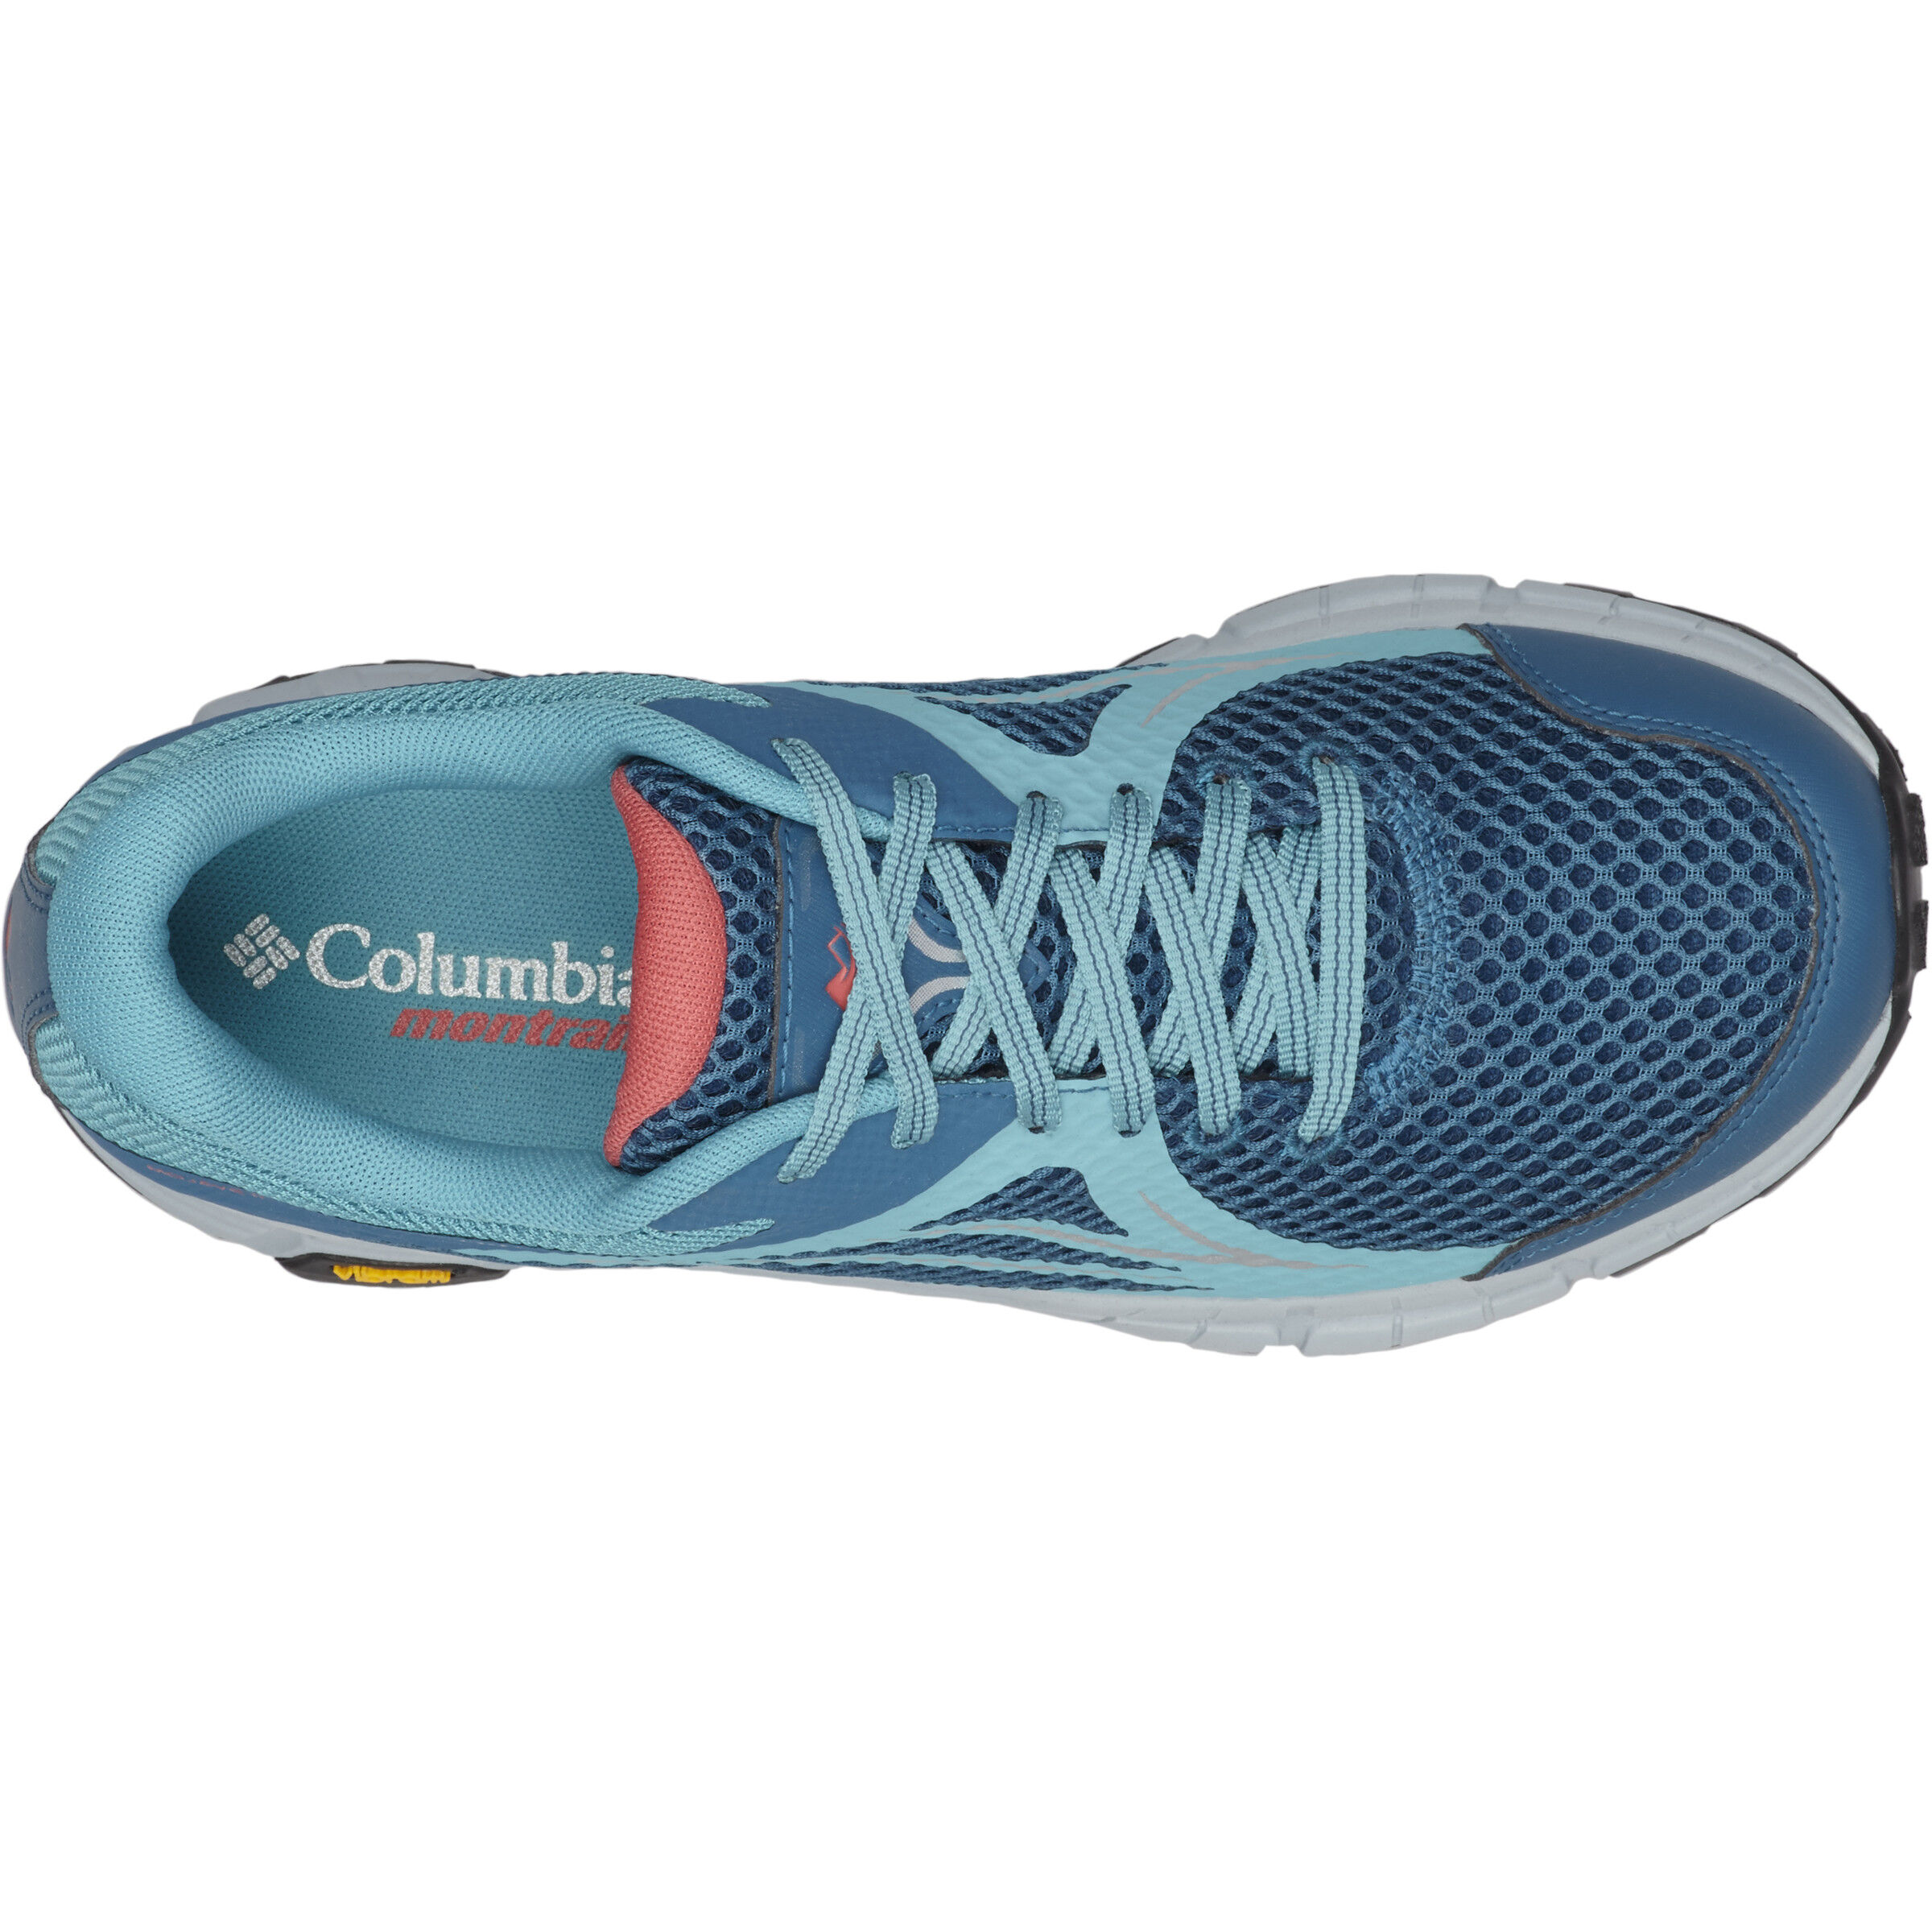 Shoes Earl Schuhgröße Blue Iii Women coastal Us 11 Columbia Caldorado Grey CrdxBQoeW